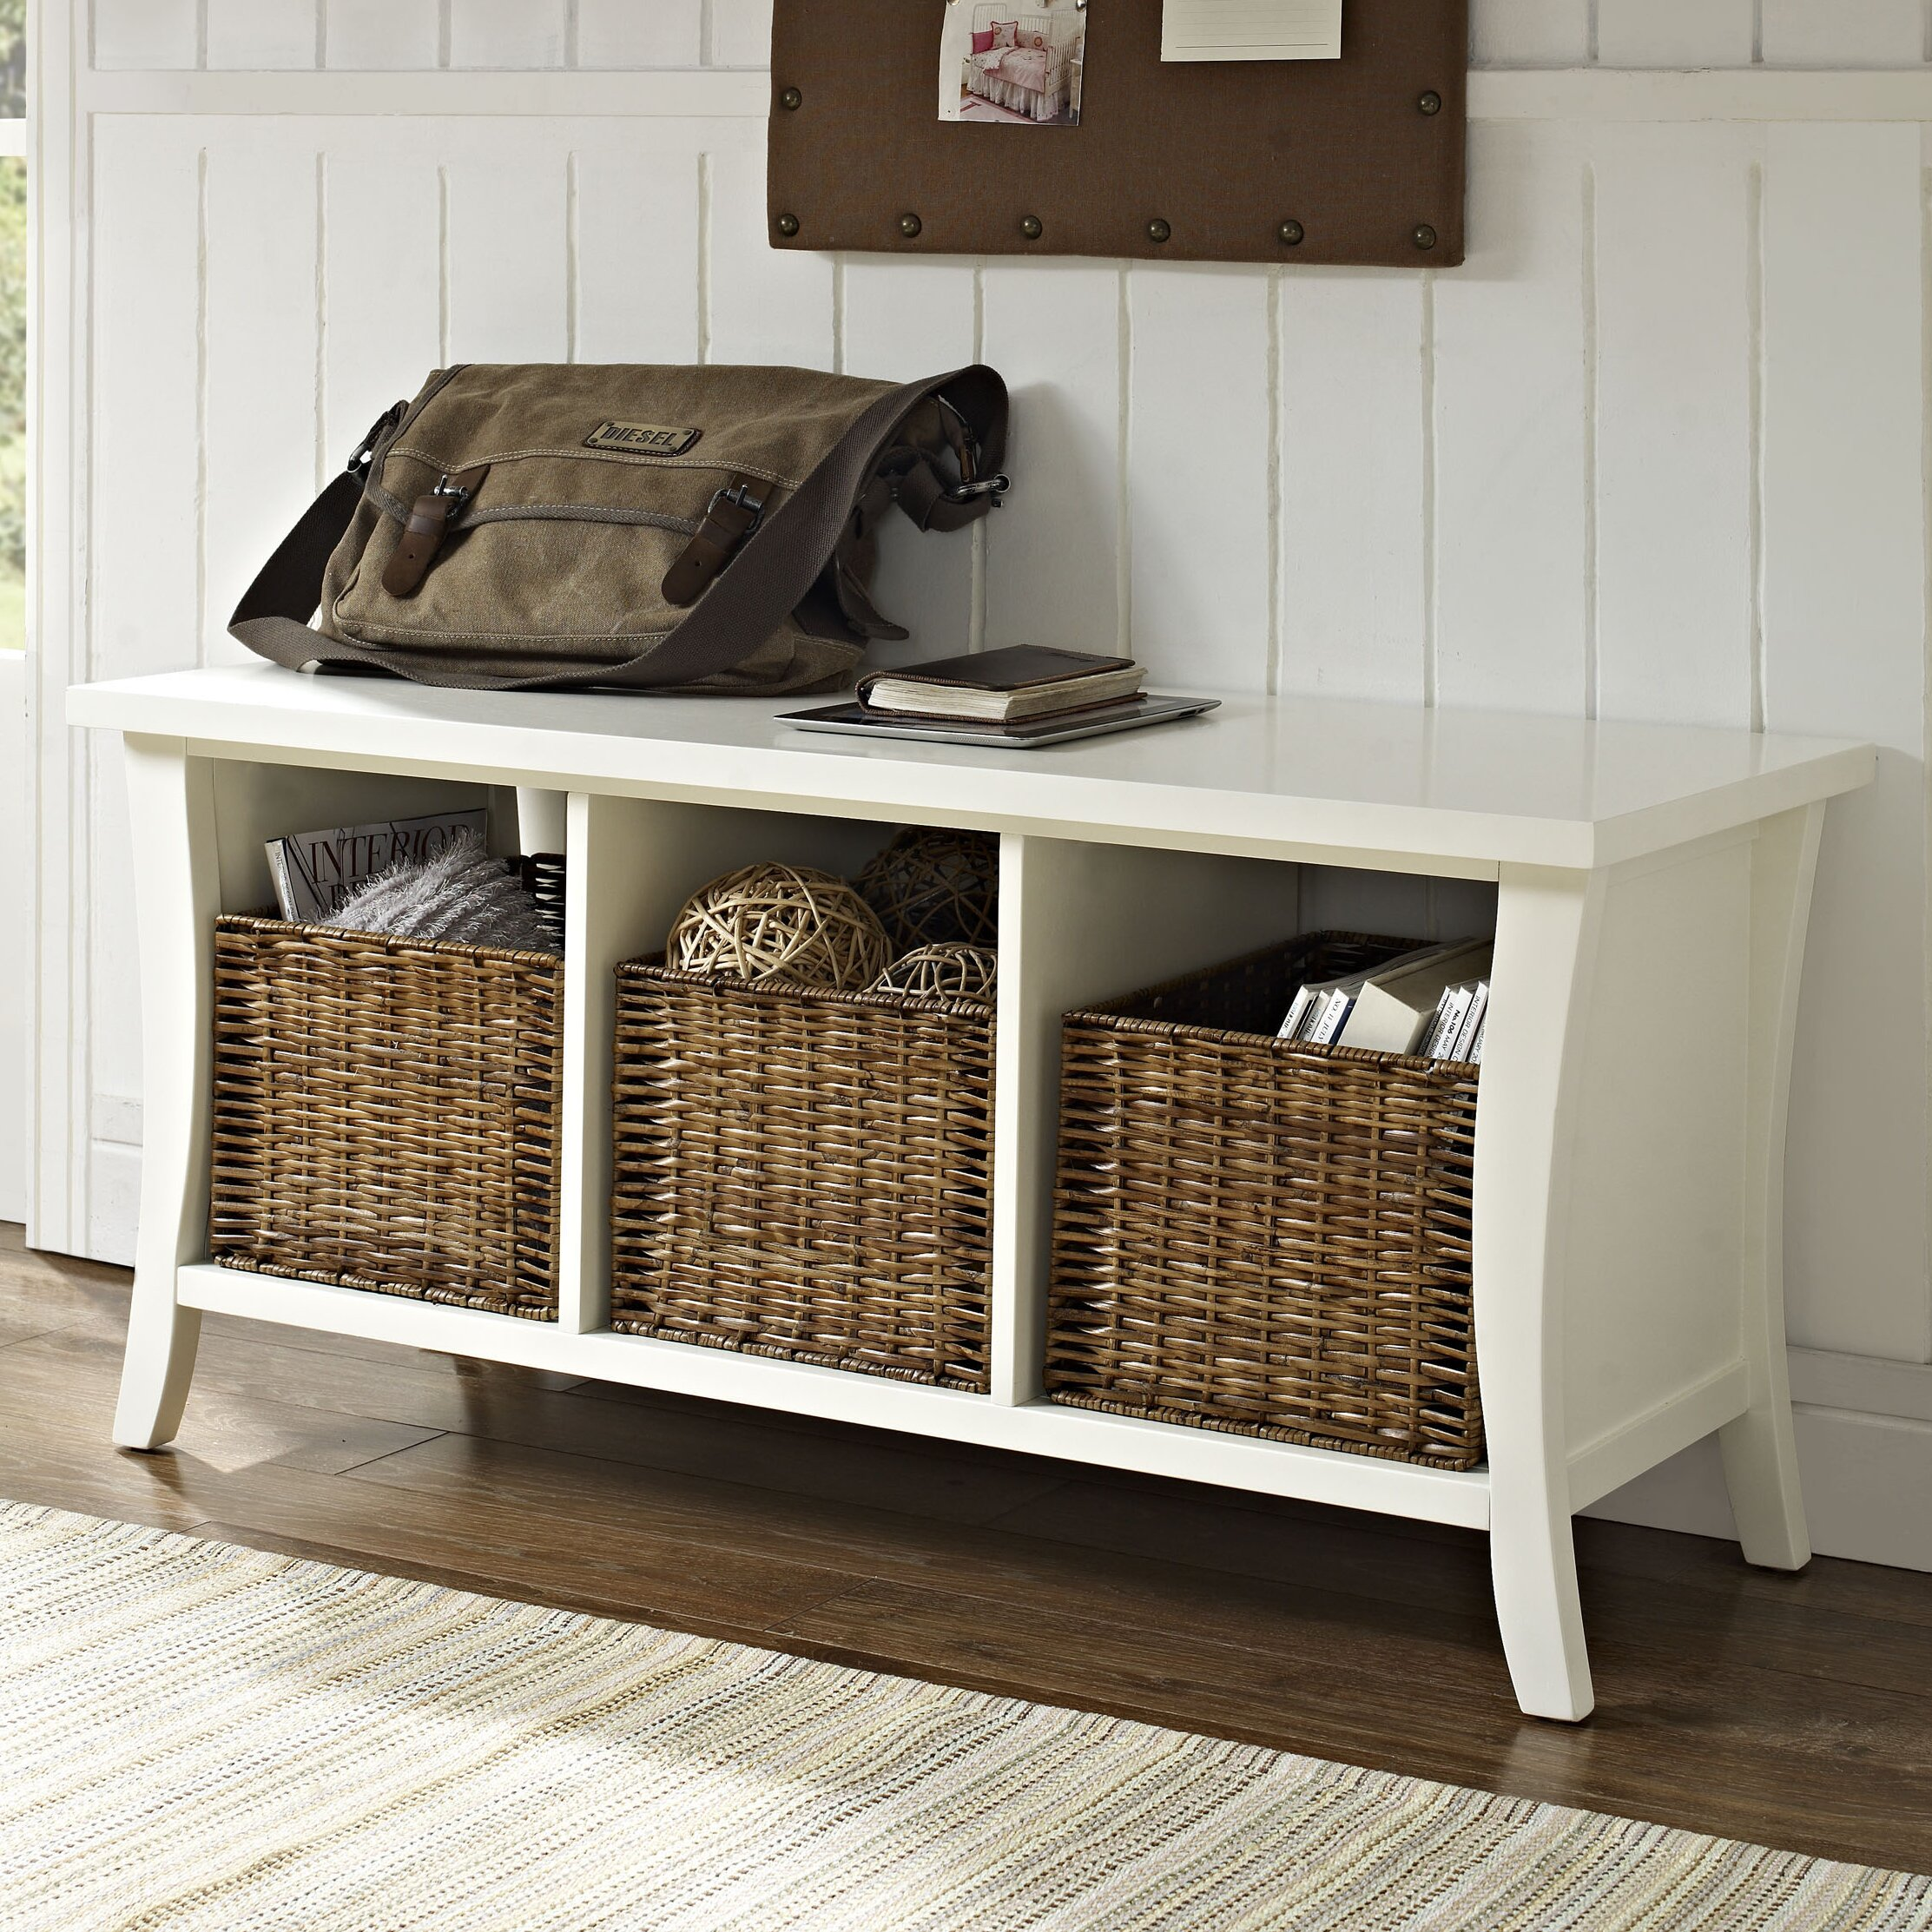 Foyer Mudroom Reviews : Beachcrest home lewisetta entryway storage bench reviews